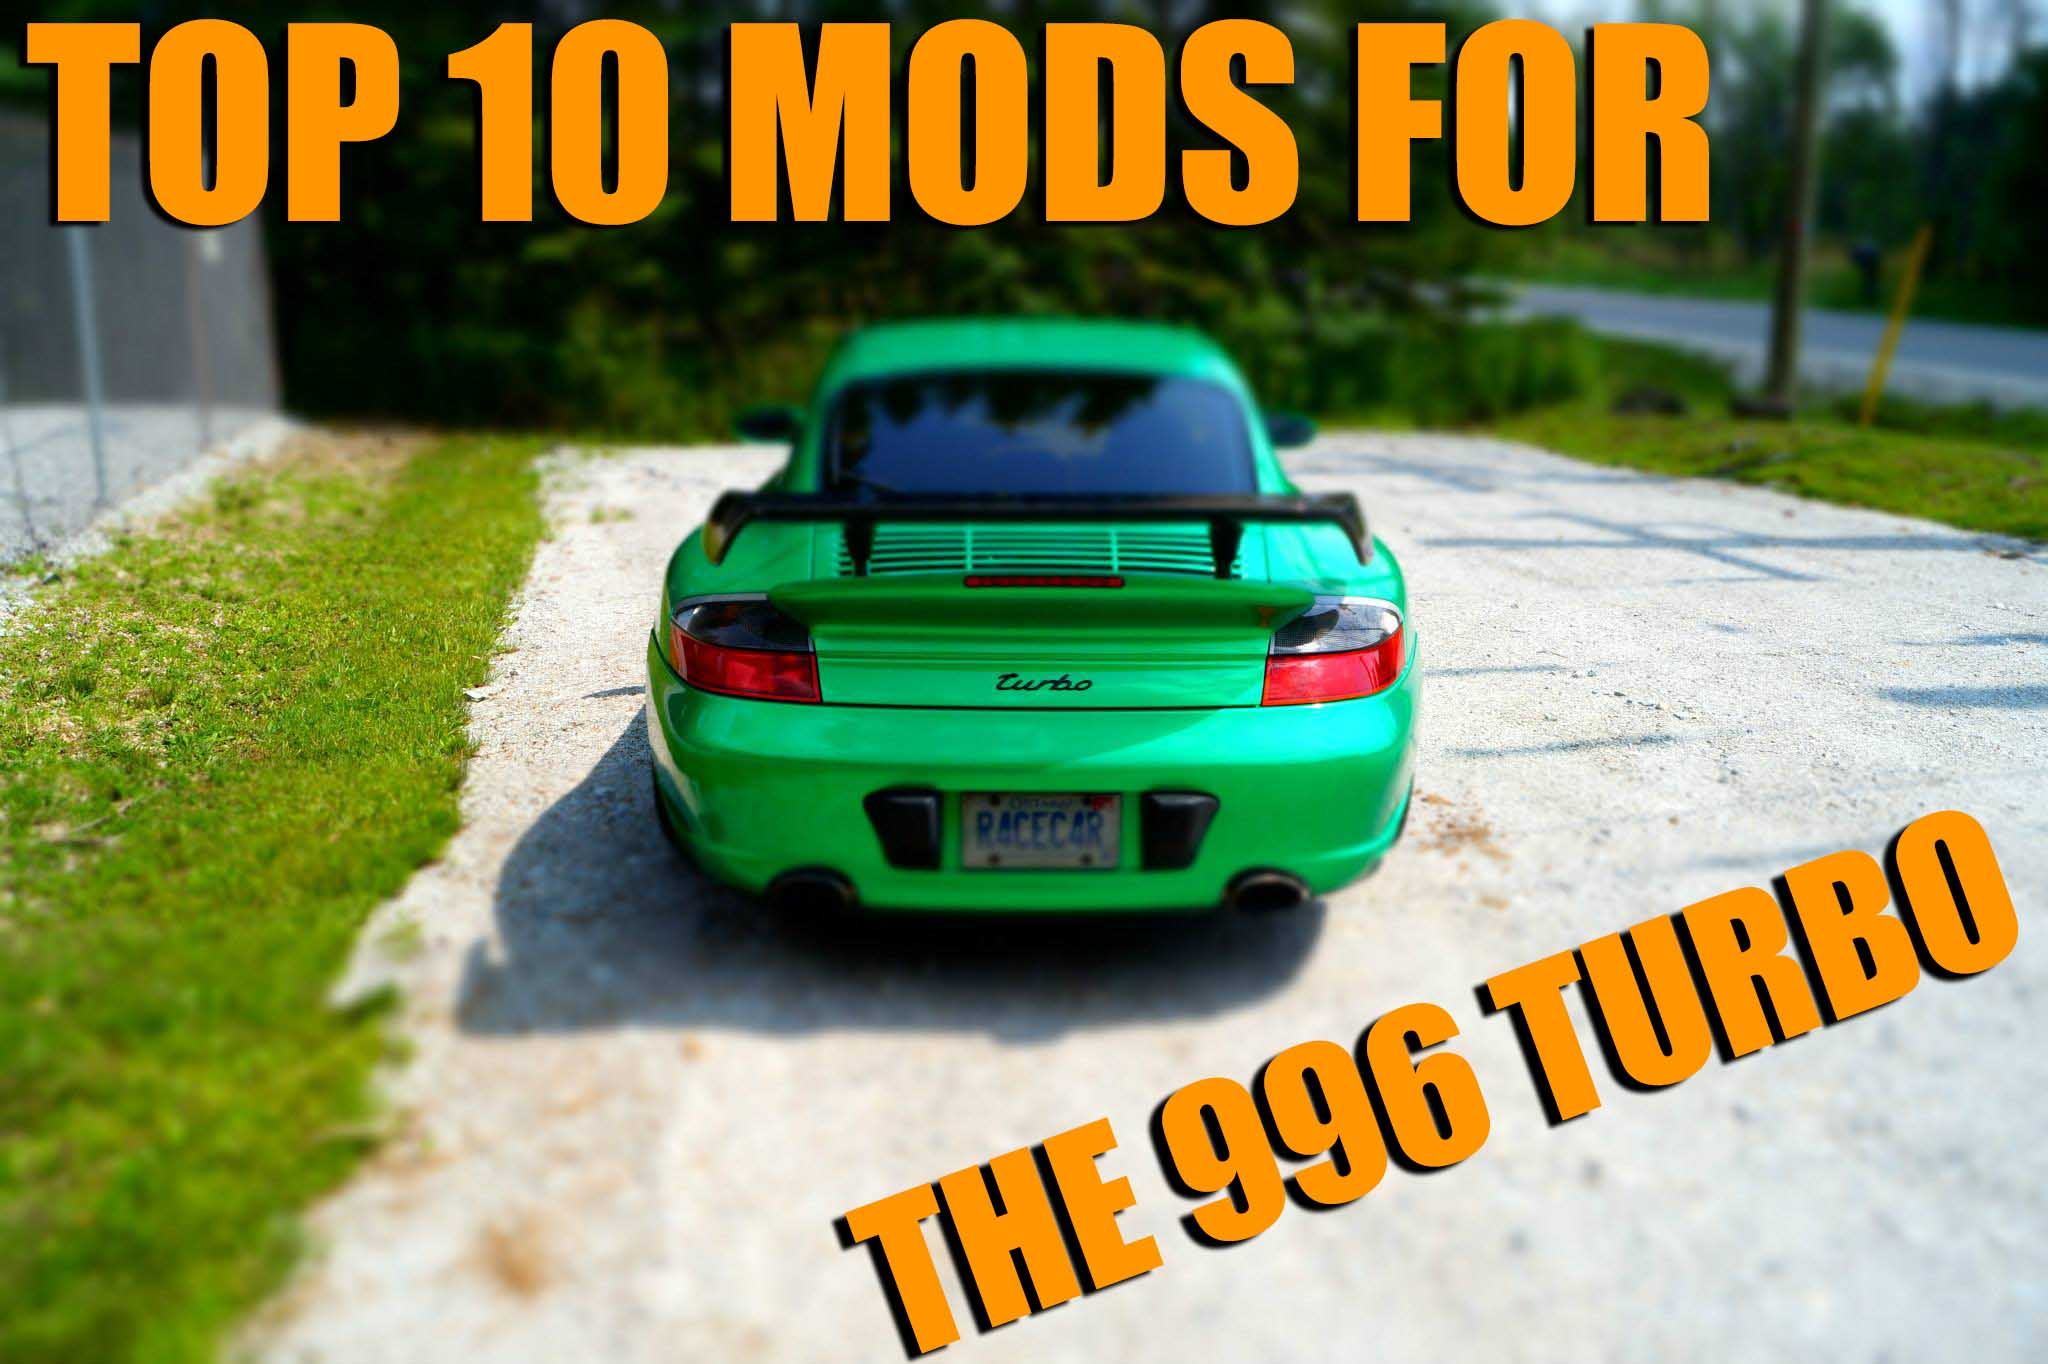 Top 10 Mods For The 996 Turbo